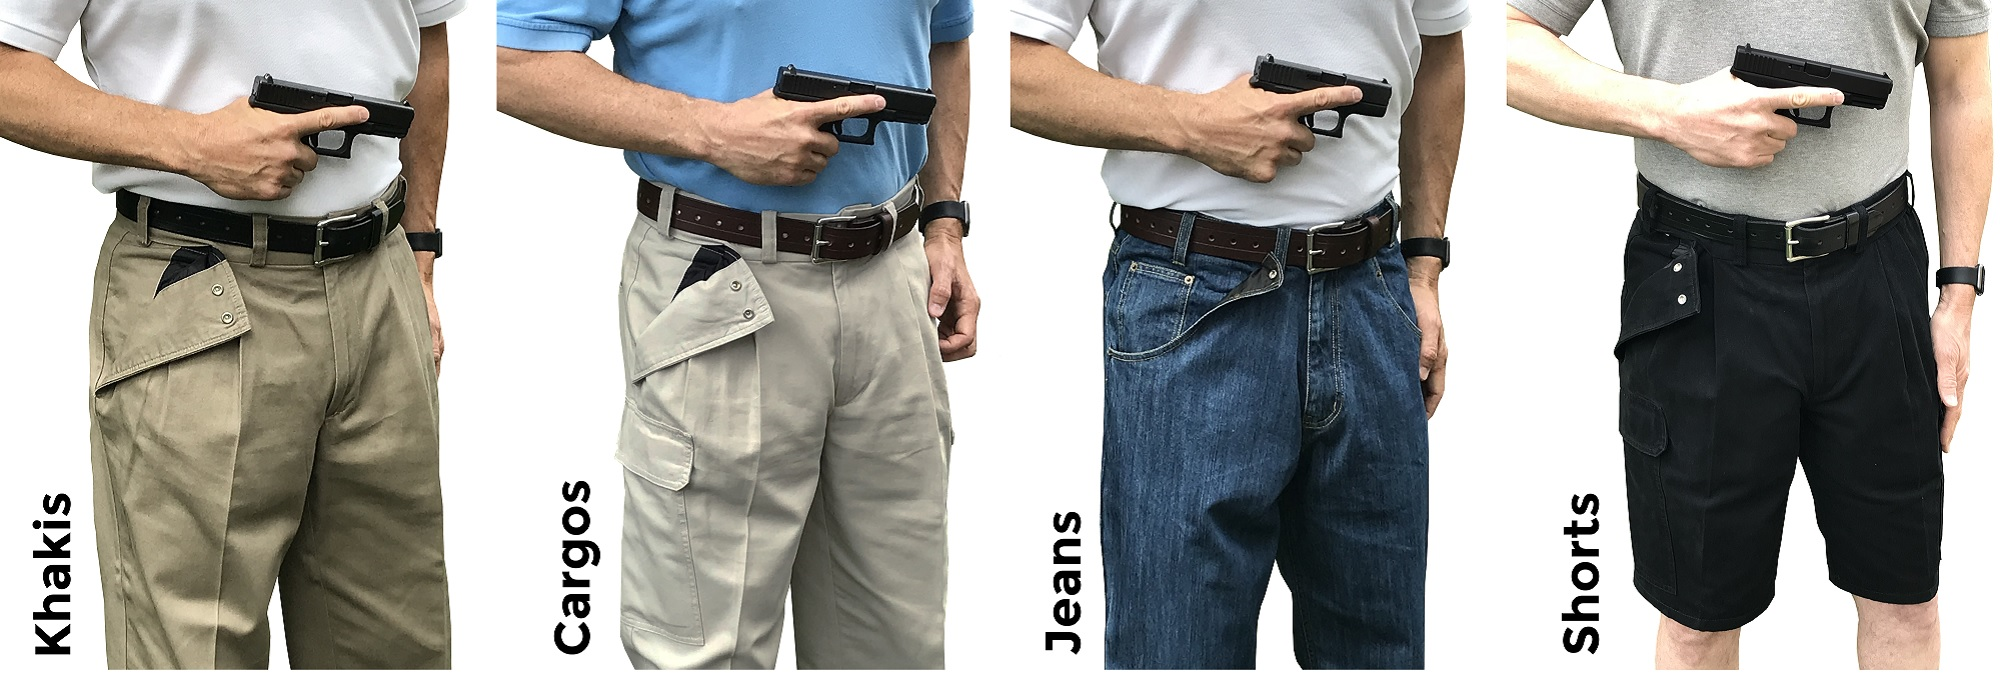 CCW Breakaways Concealed Carry Clothing